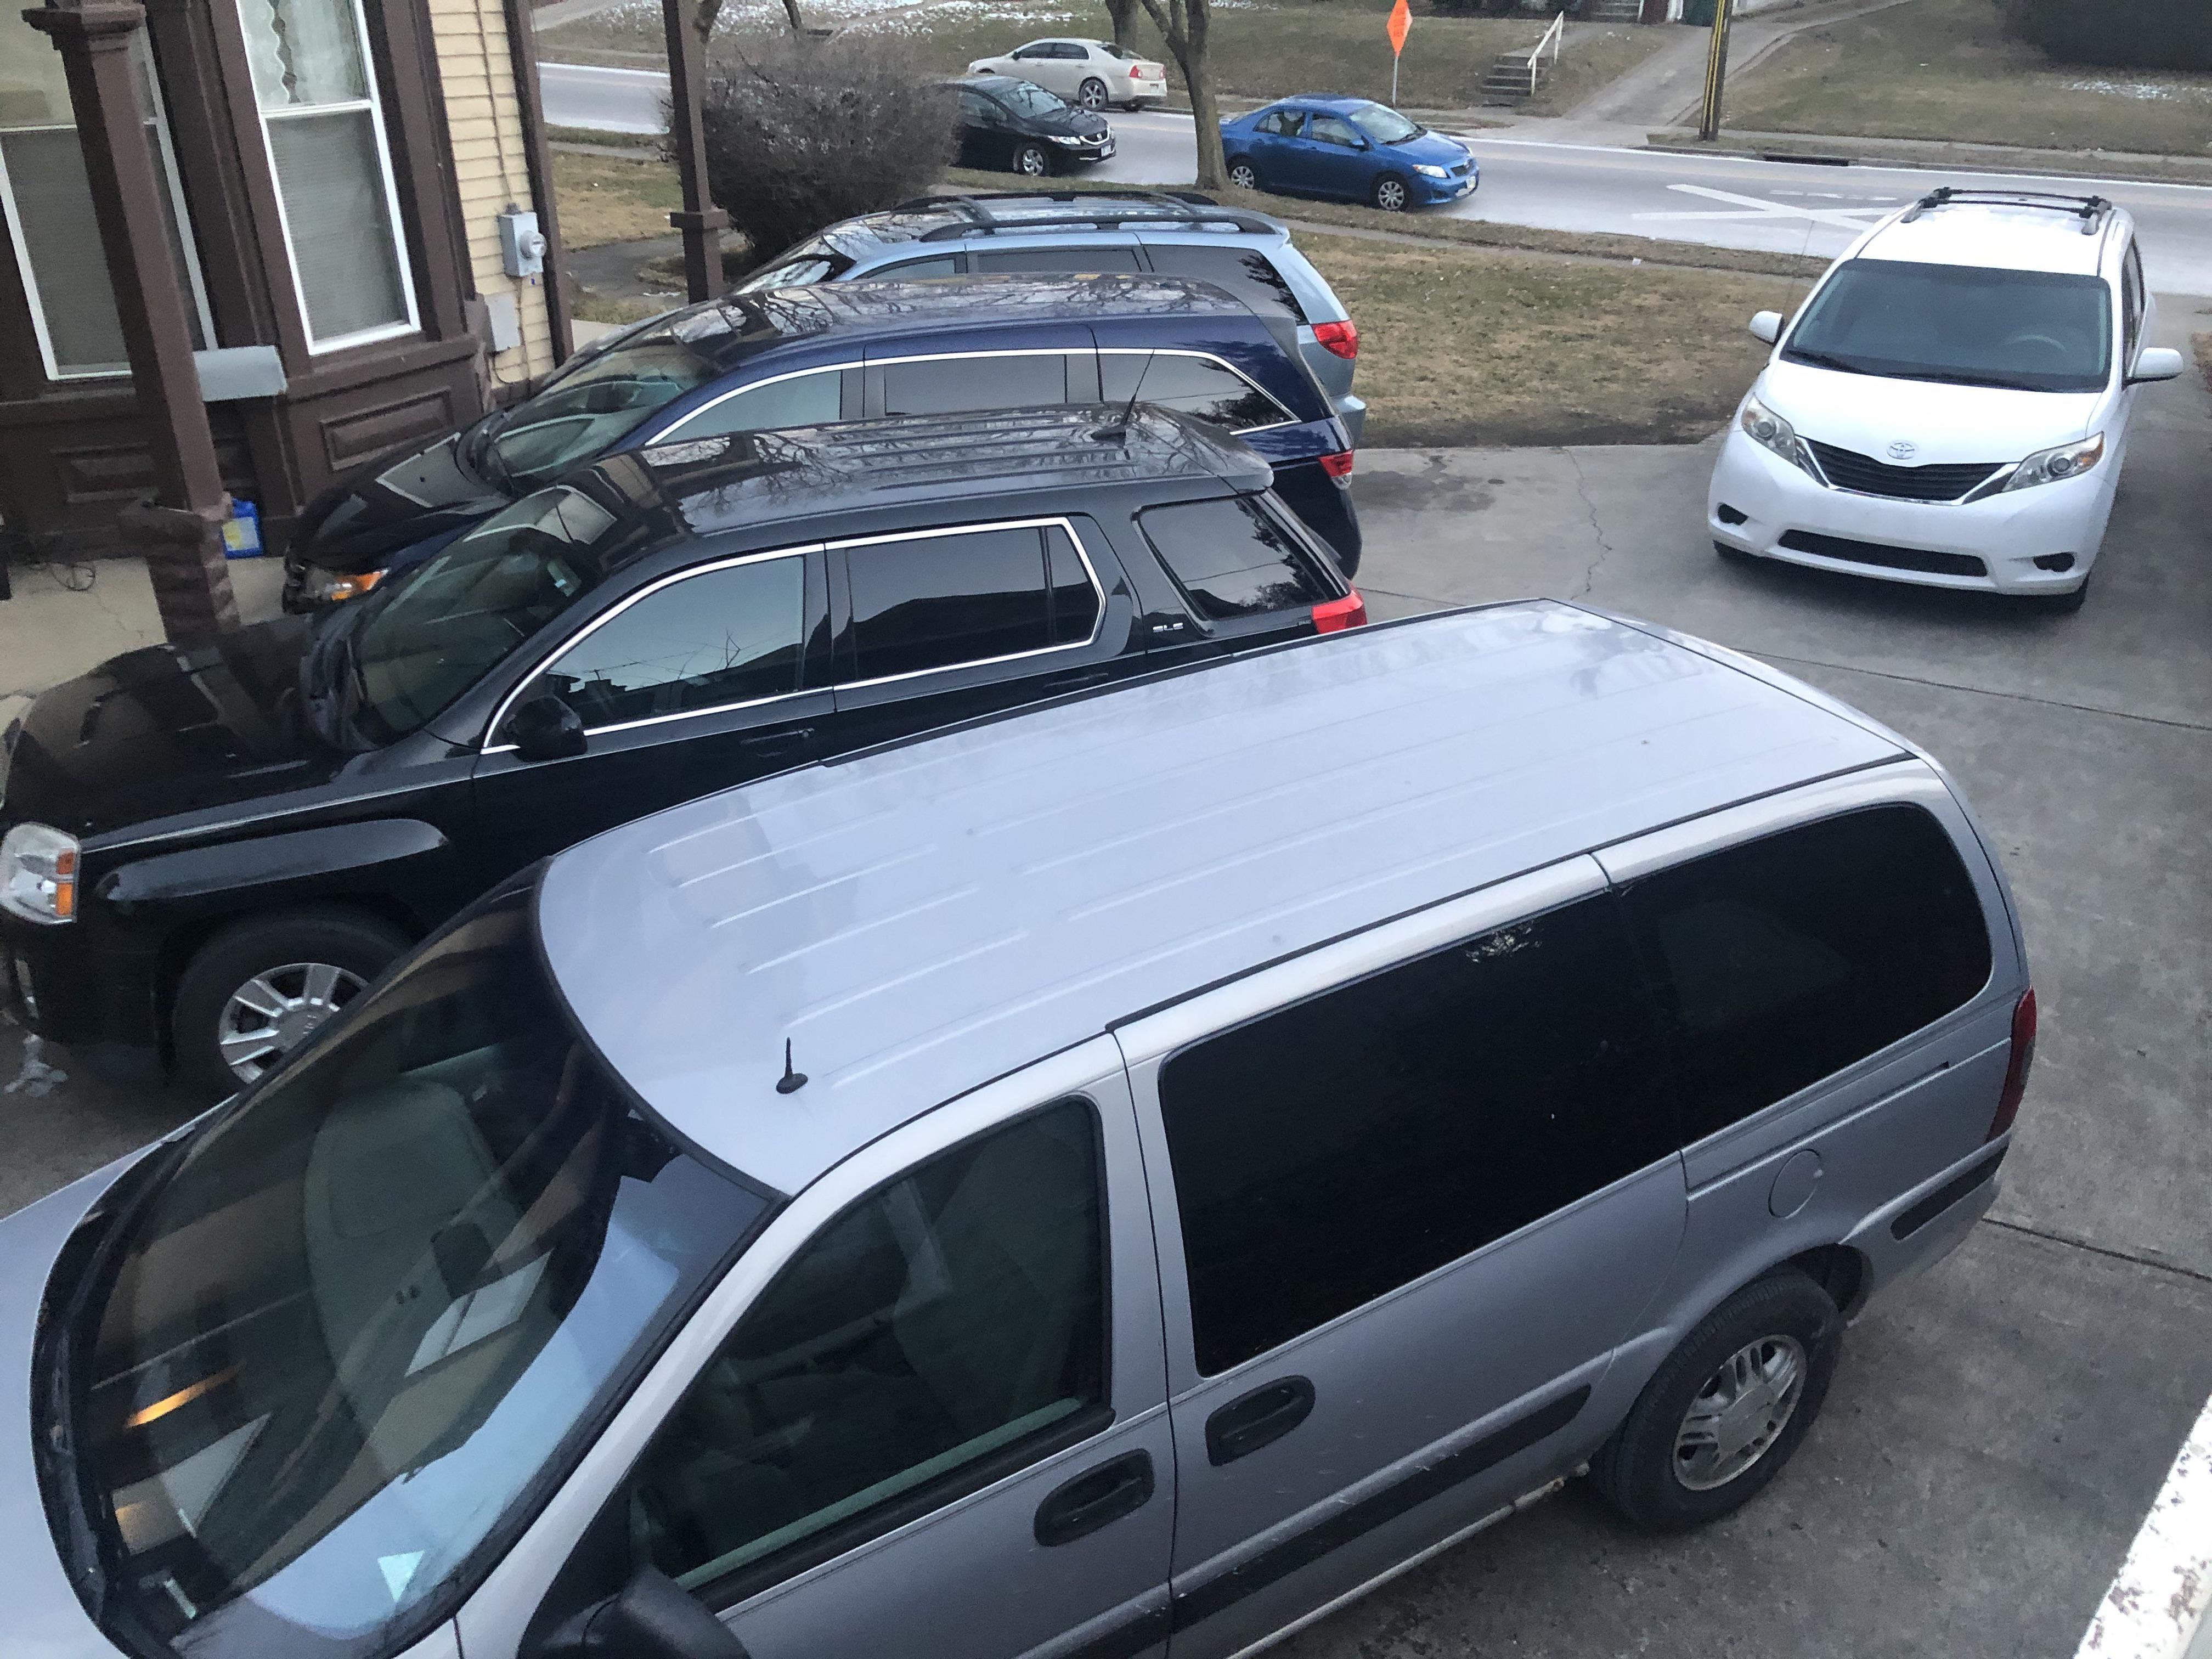 When all of their adult kids come to visit, my parents driveway looks like a used mini van dealership